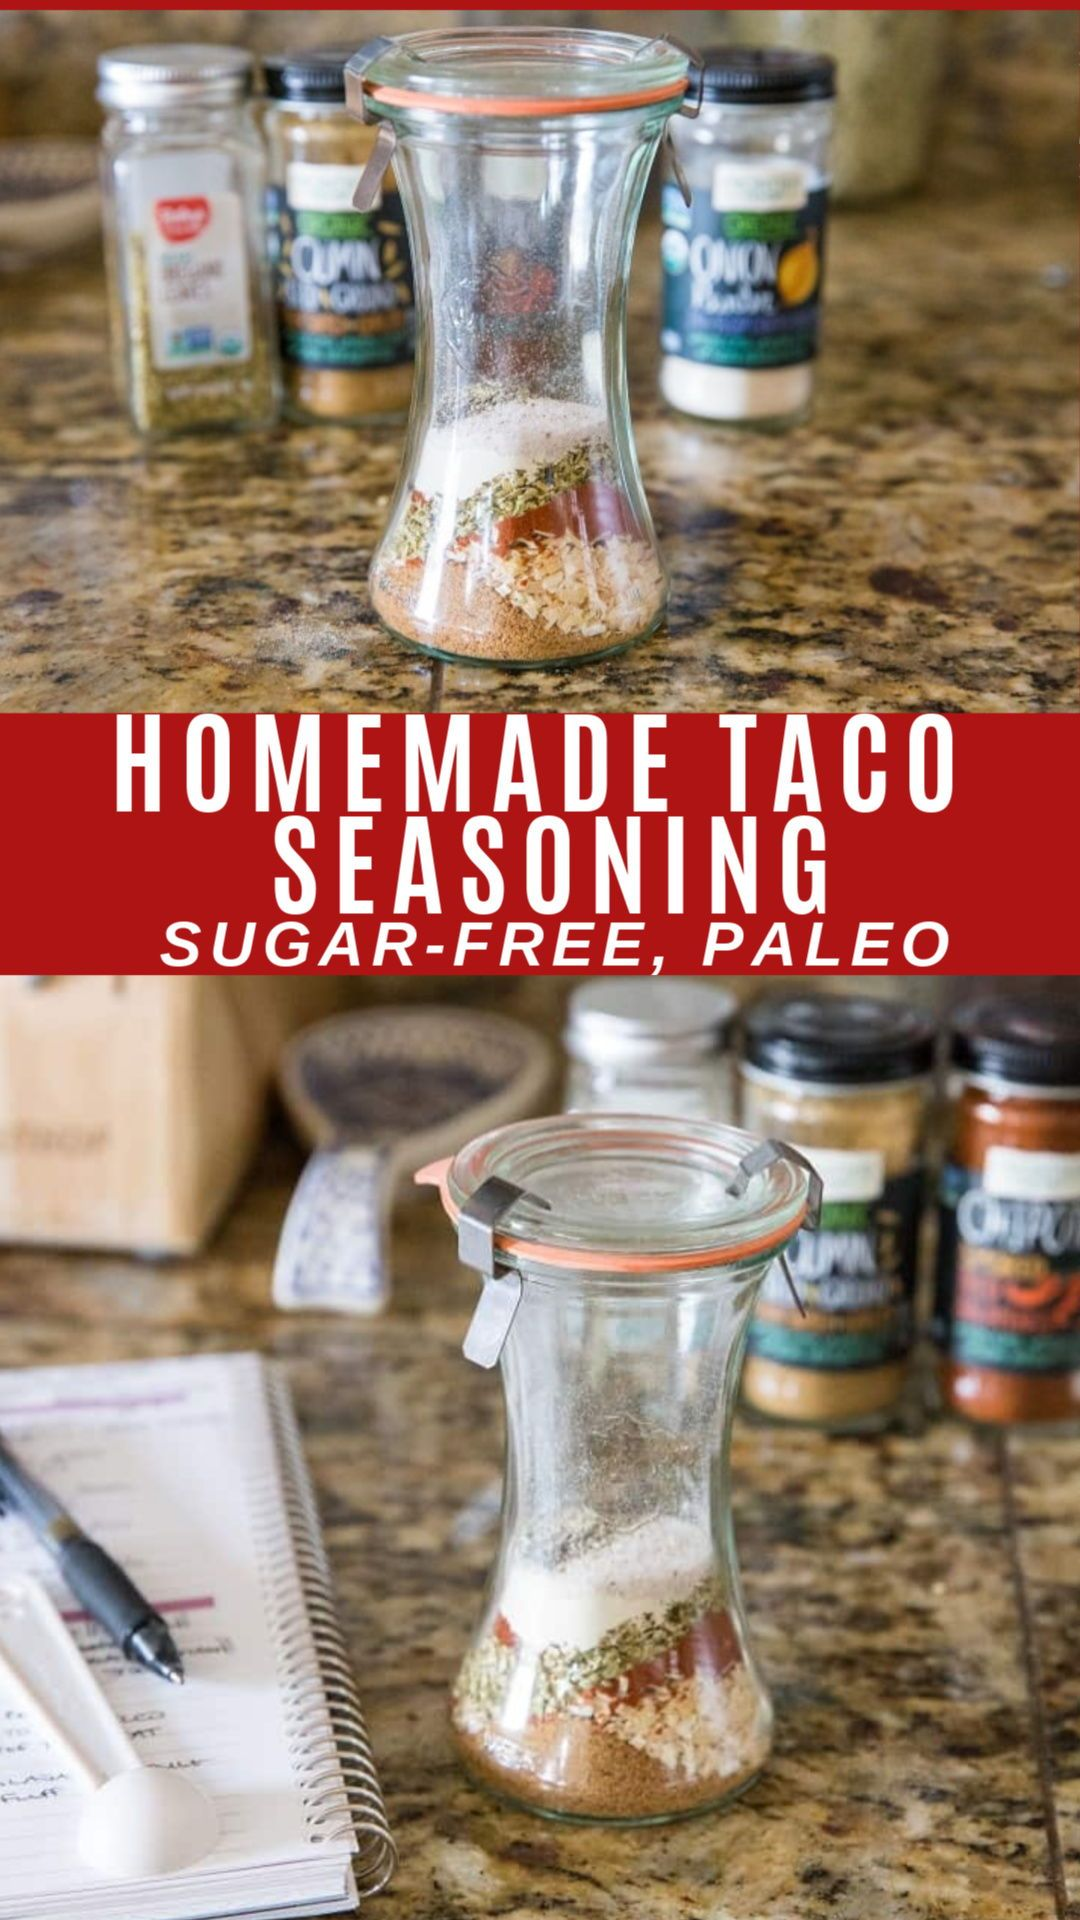 Homemade Taco Seasoning (refined sugar-free)